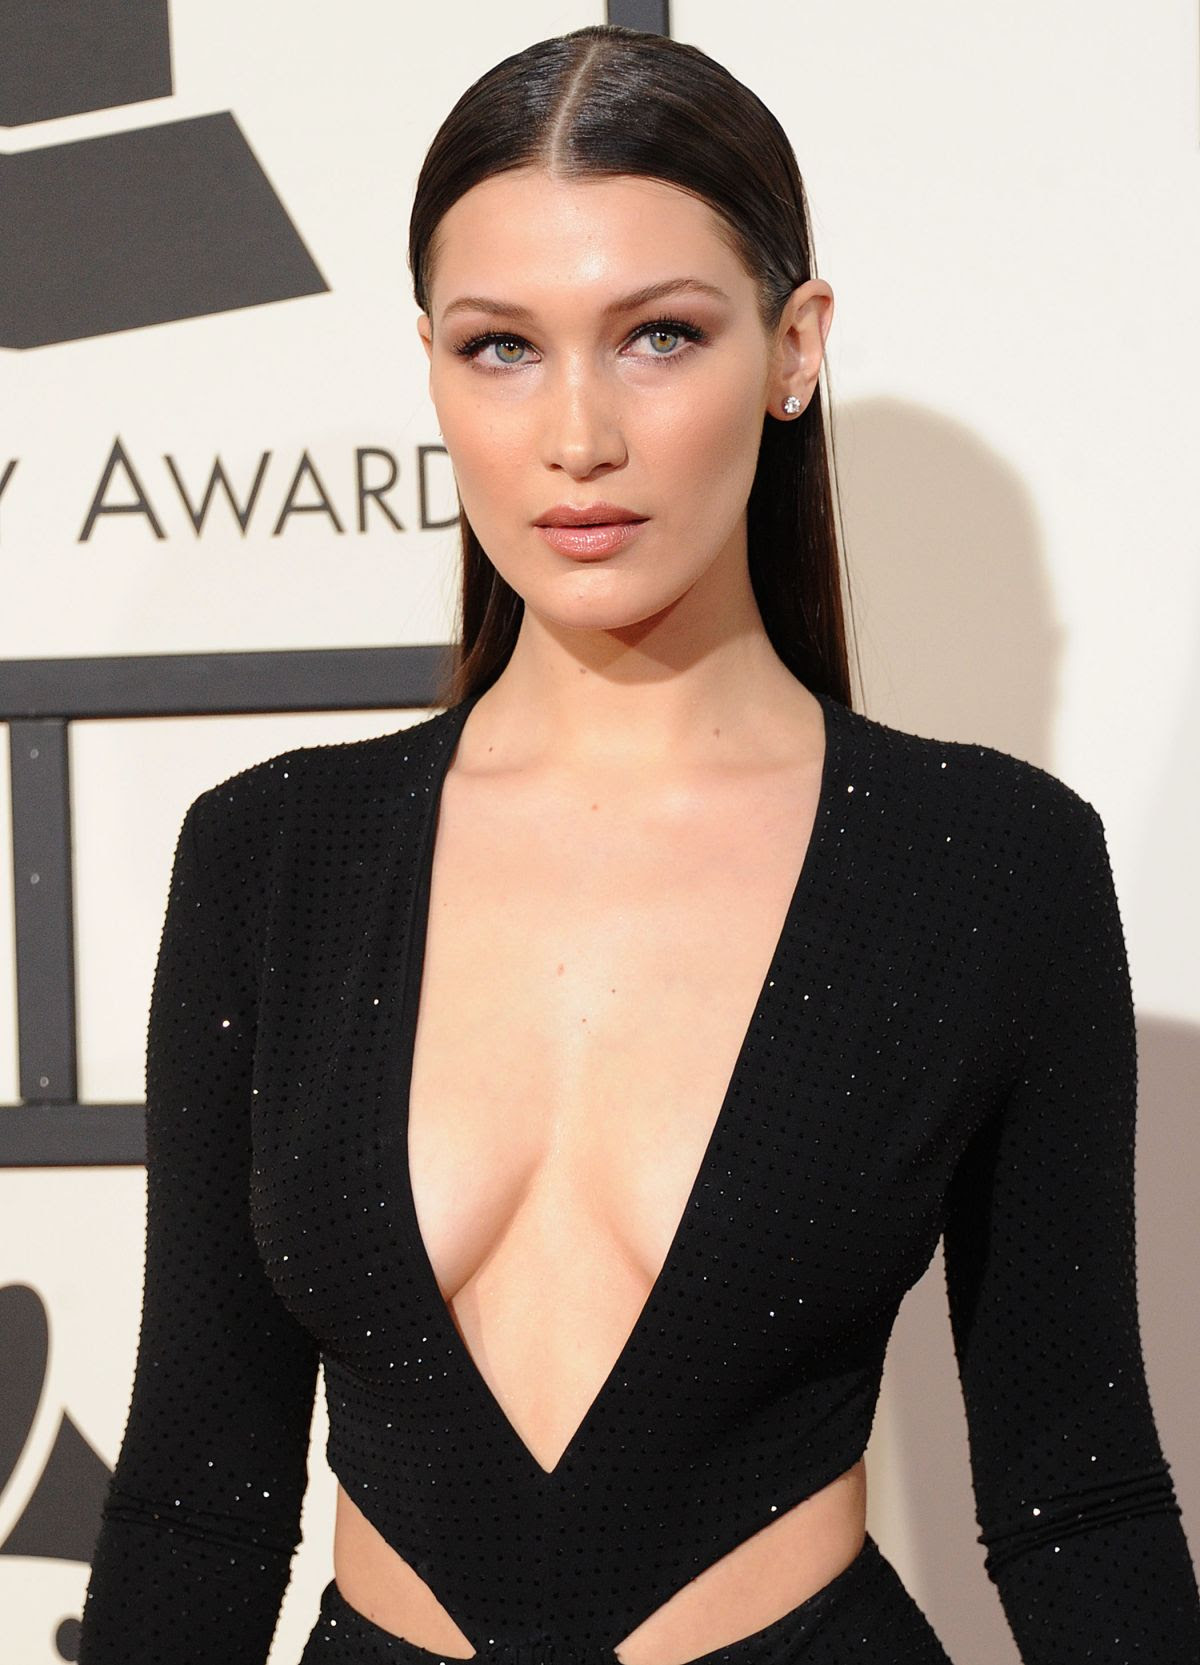 BELLA HADID at Grammy Awards 2016 in Los Angeles 02/15/2016